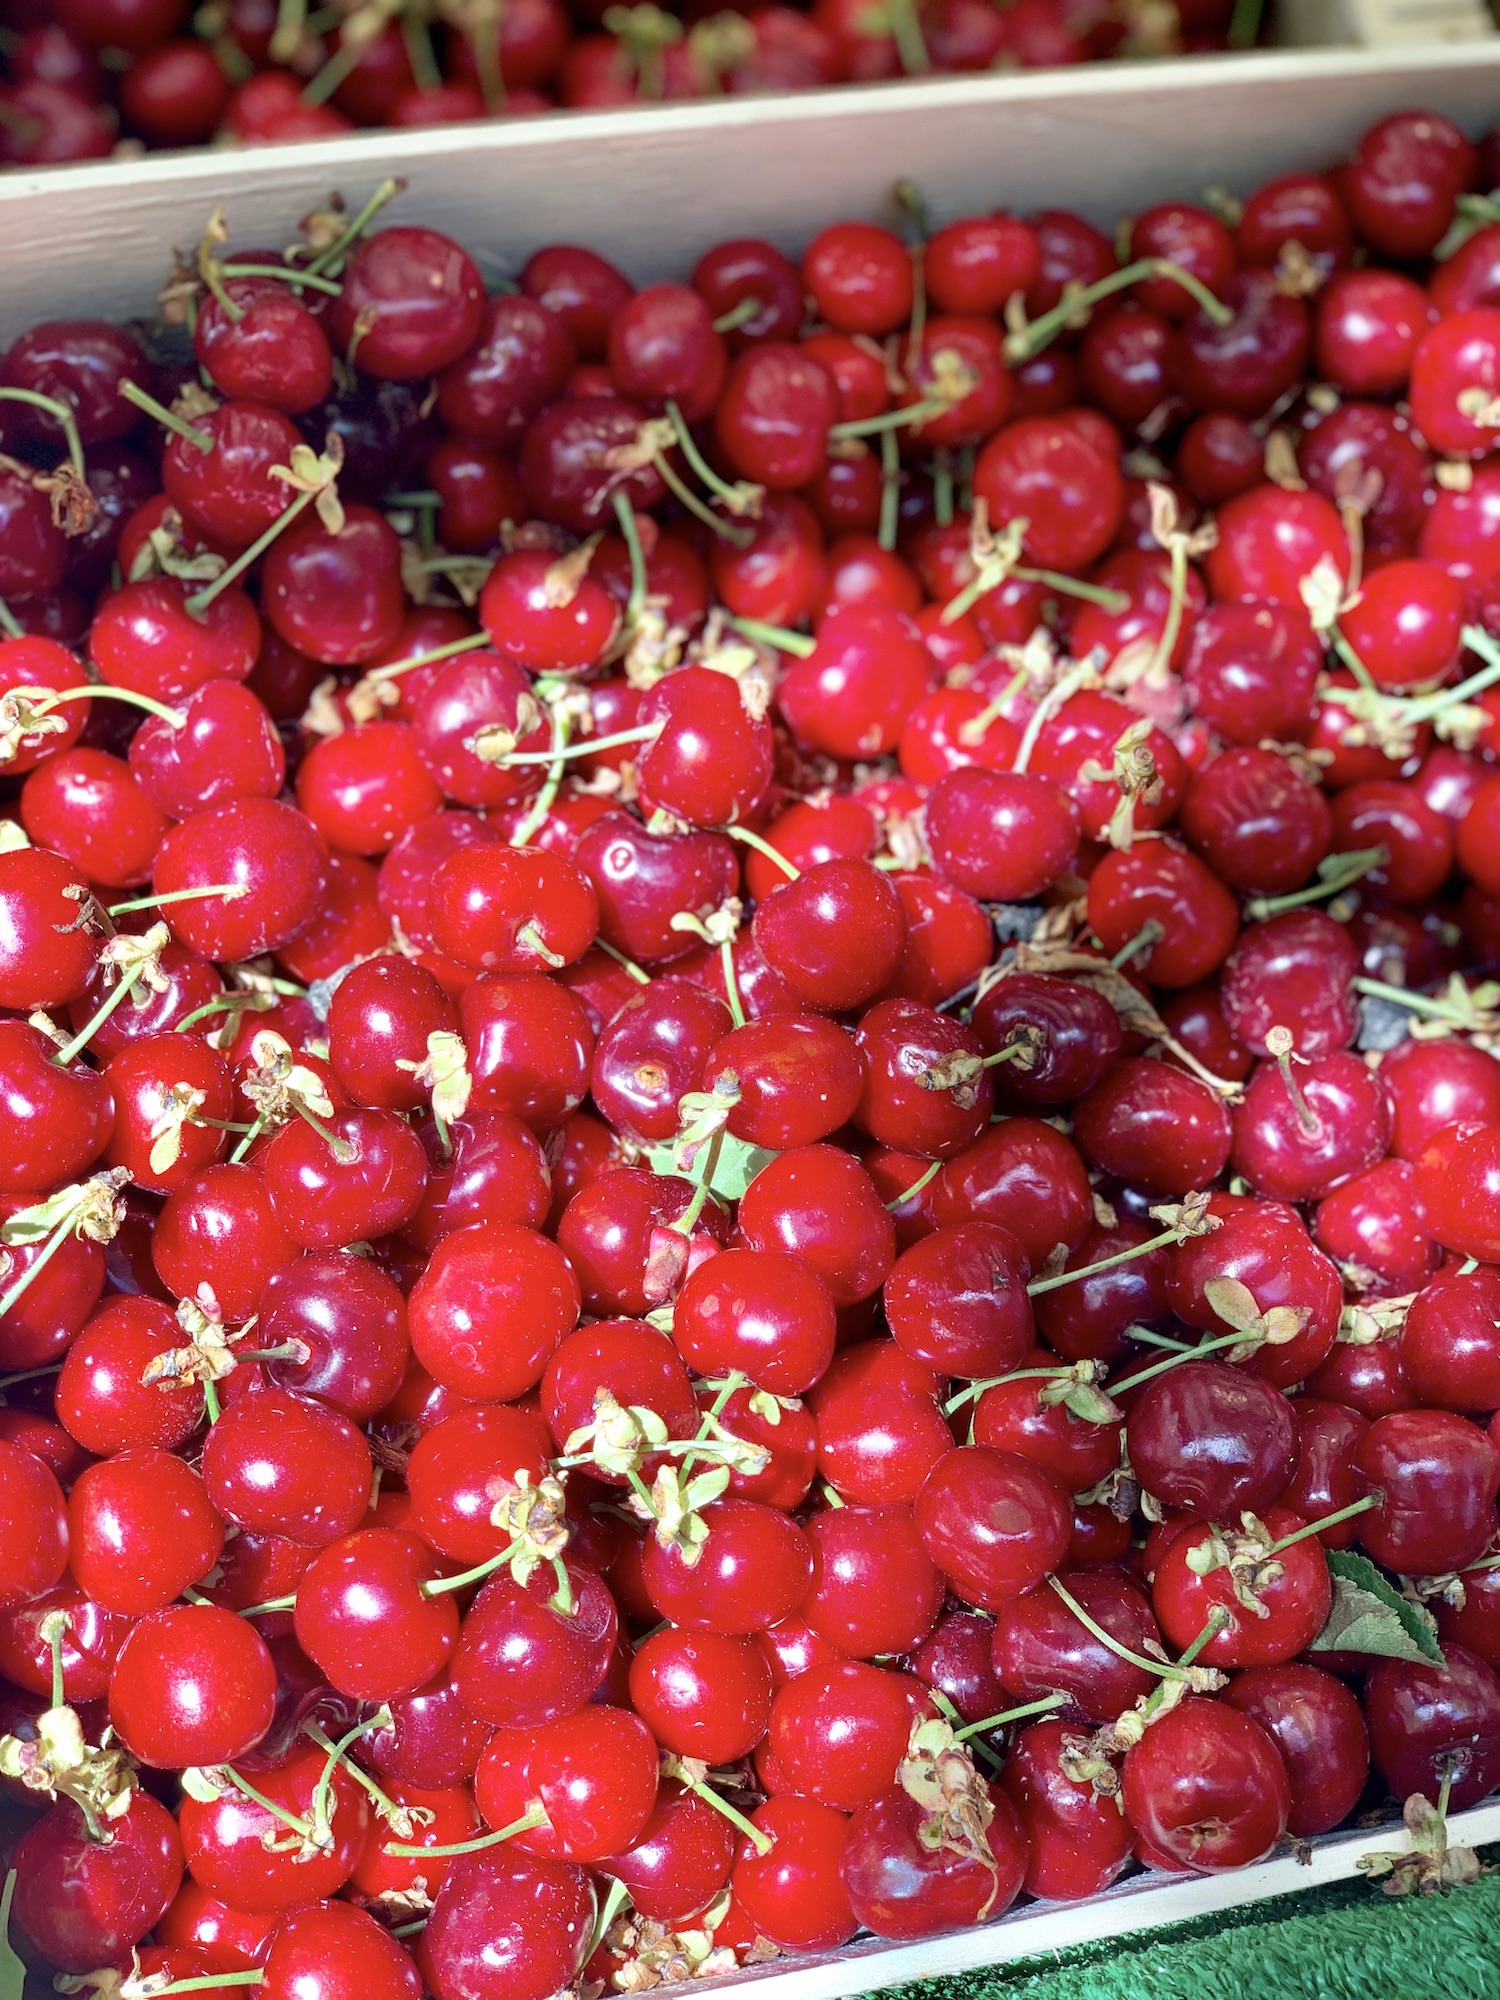 Cherries at Marché Raspail